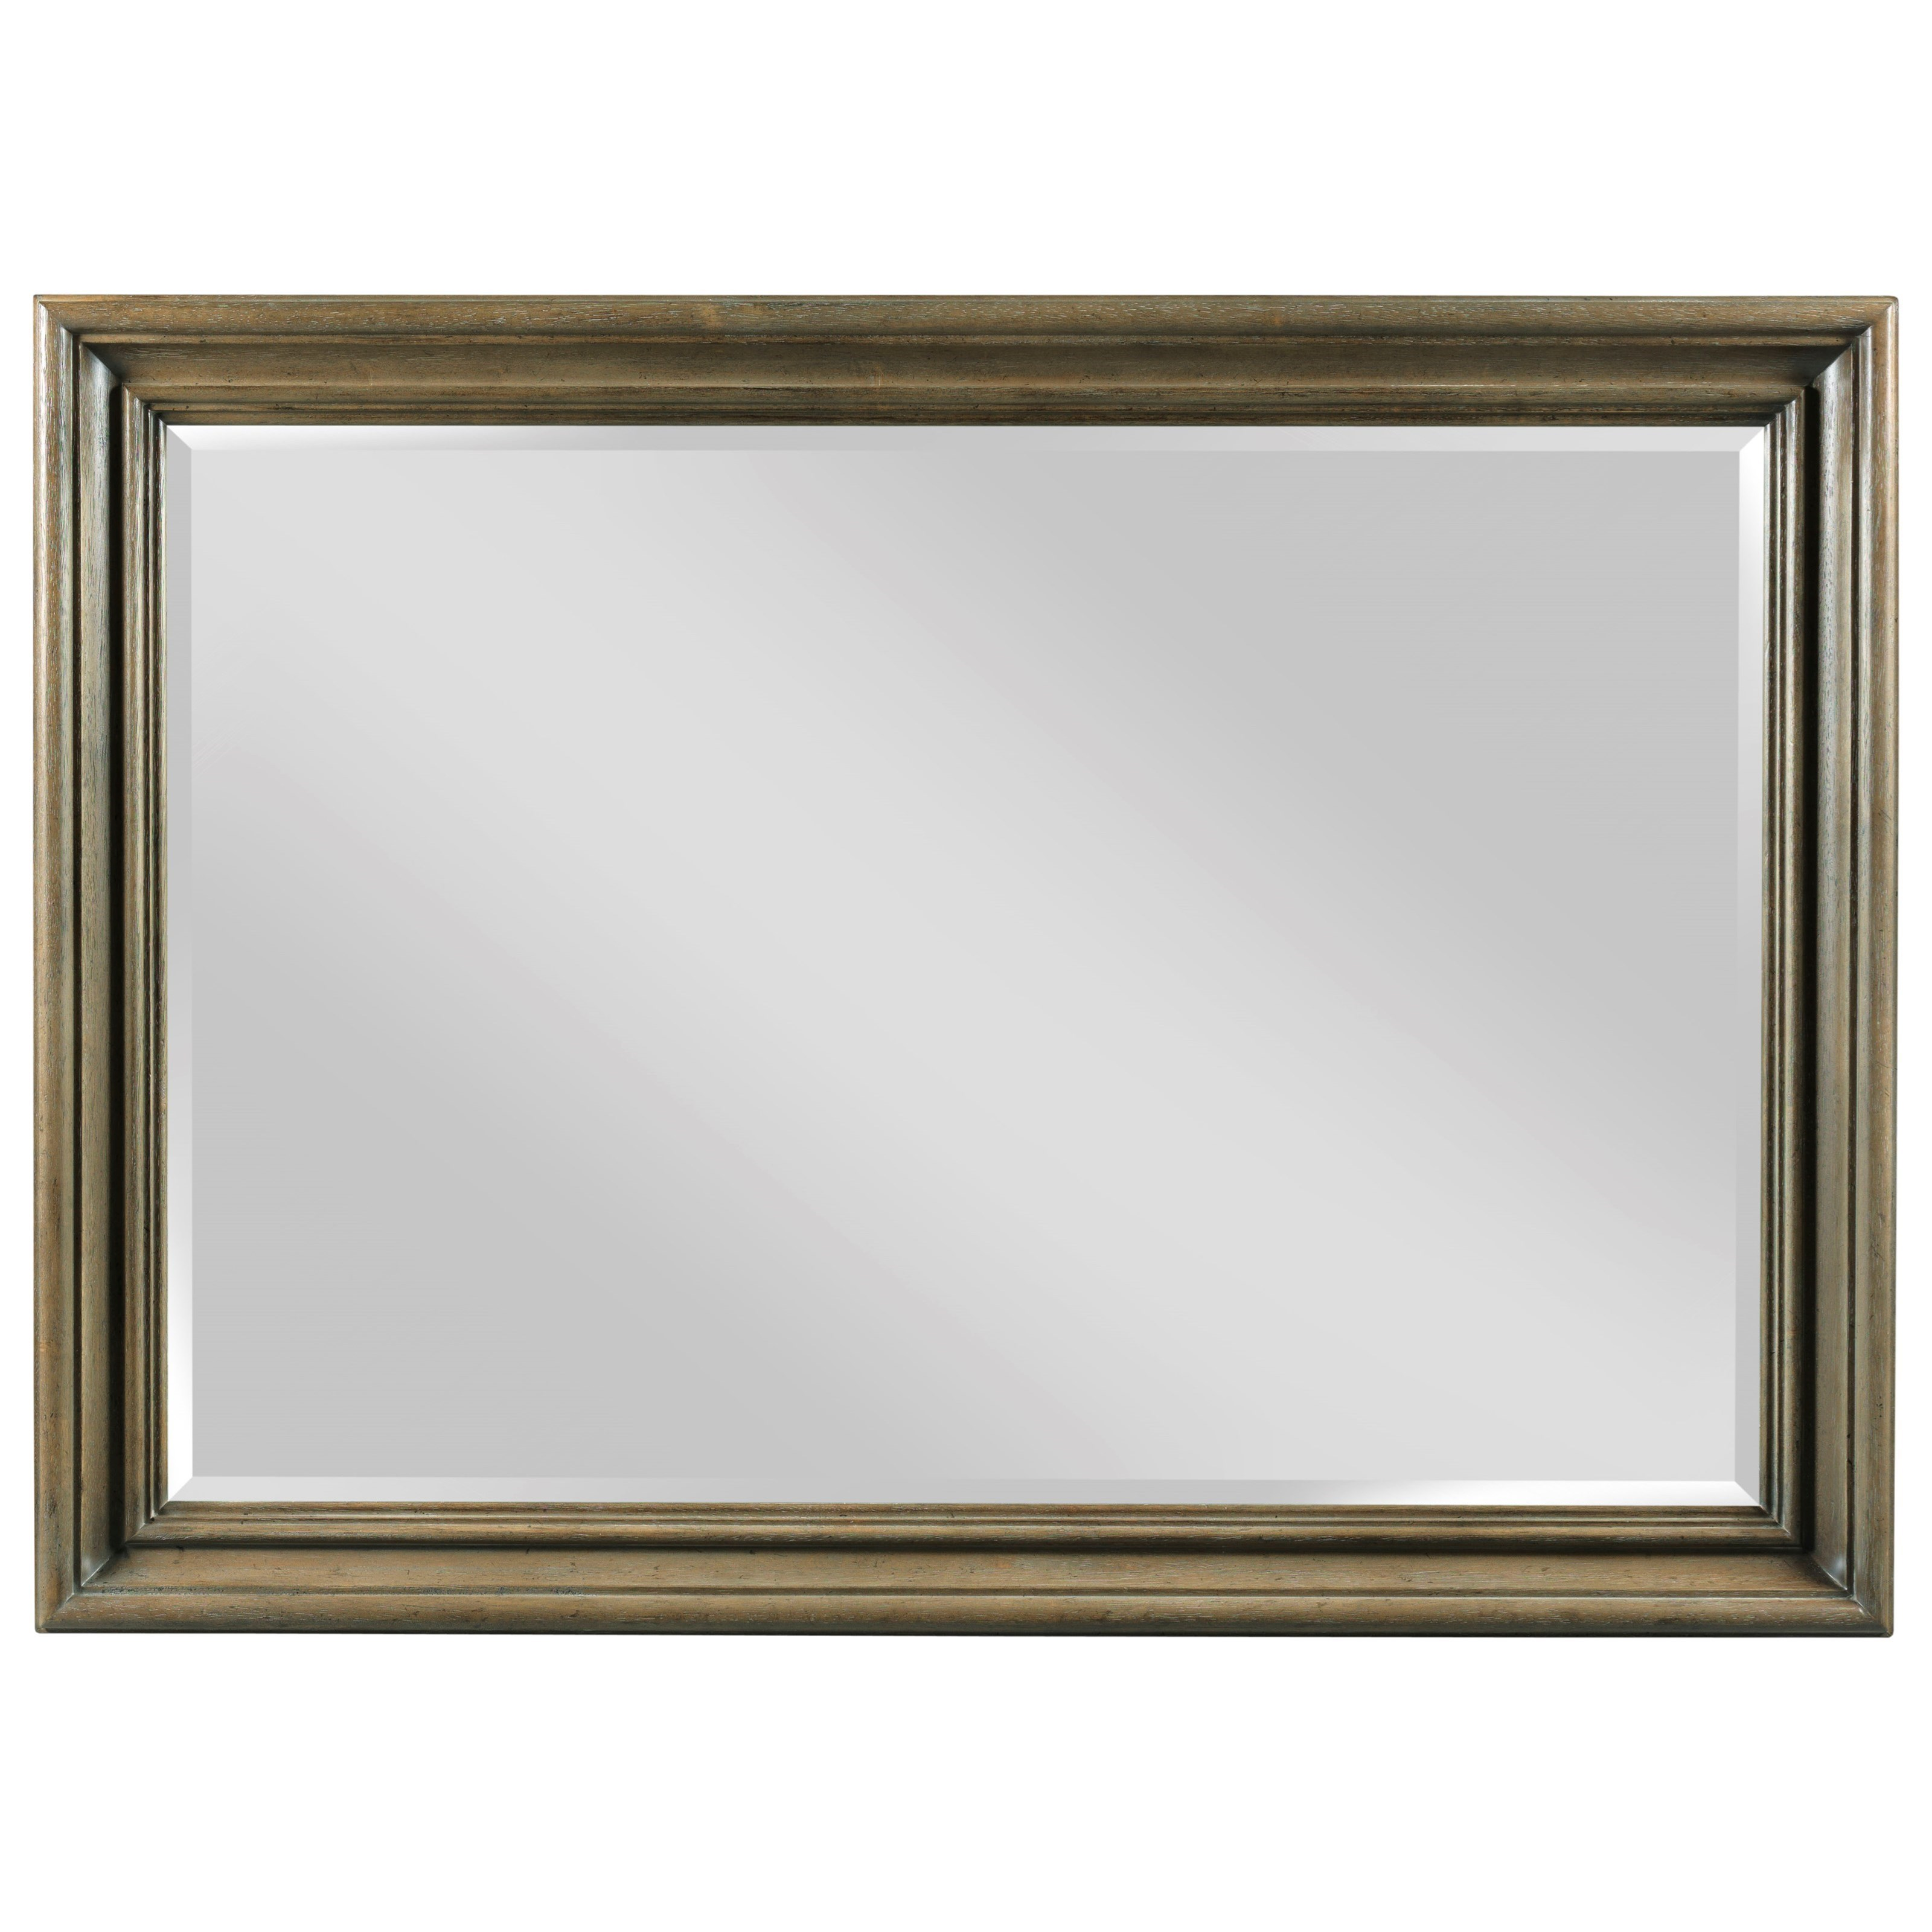 Anson Mirror by Living Trends at Sprintz Furniture